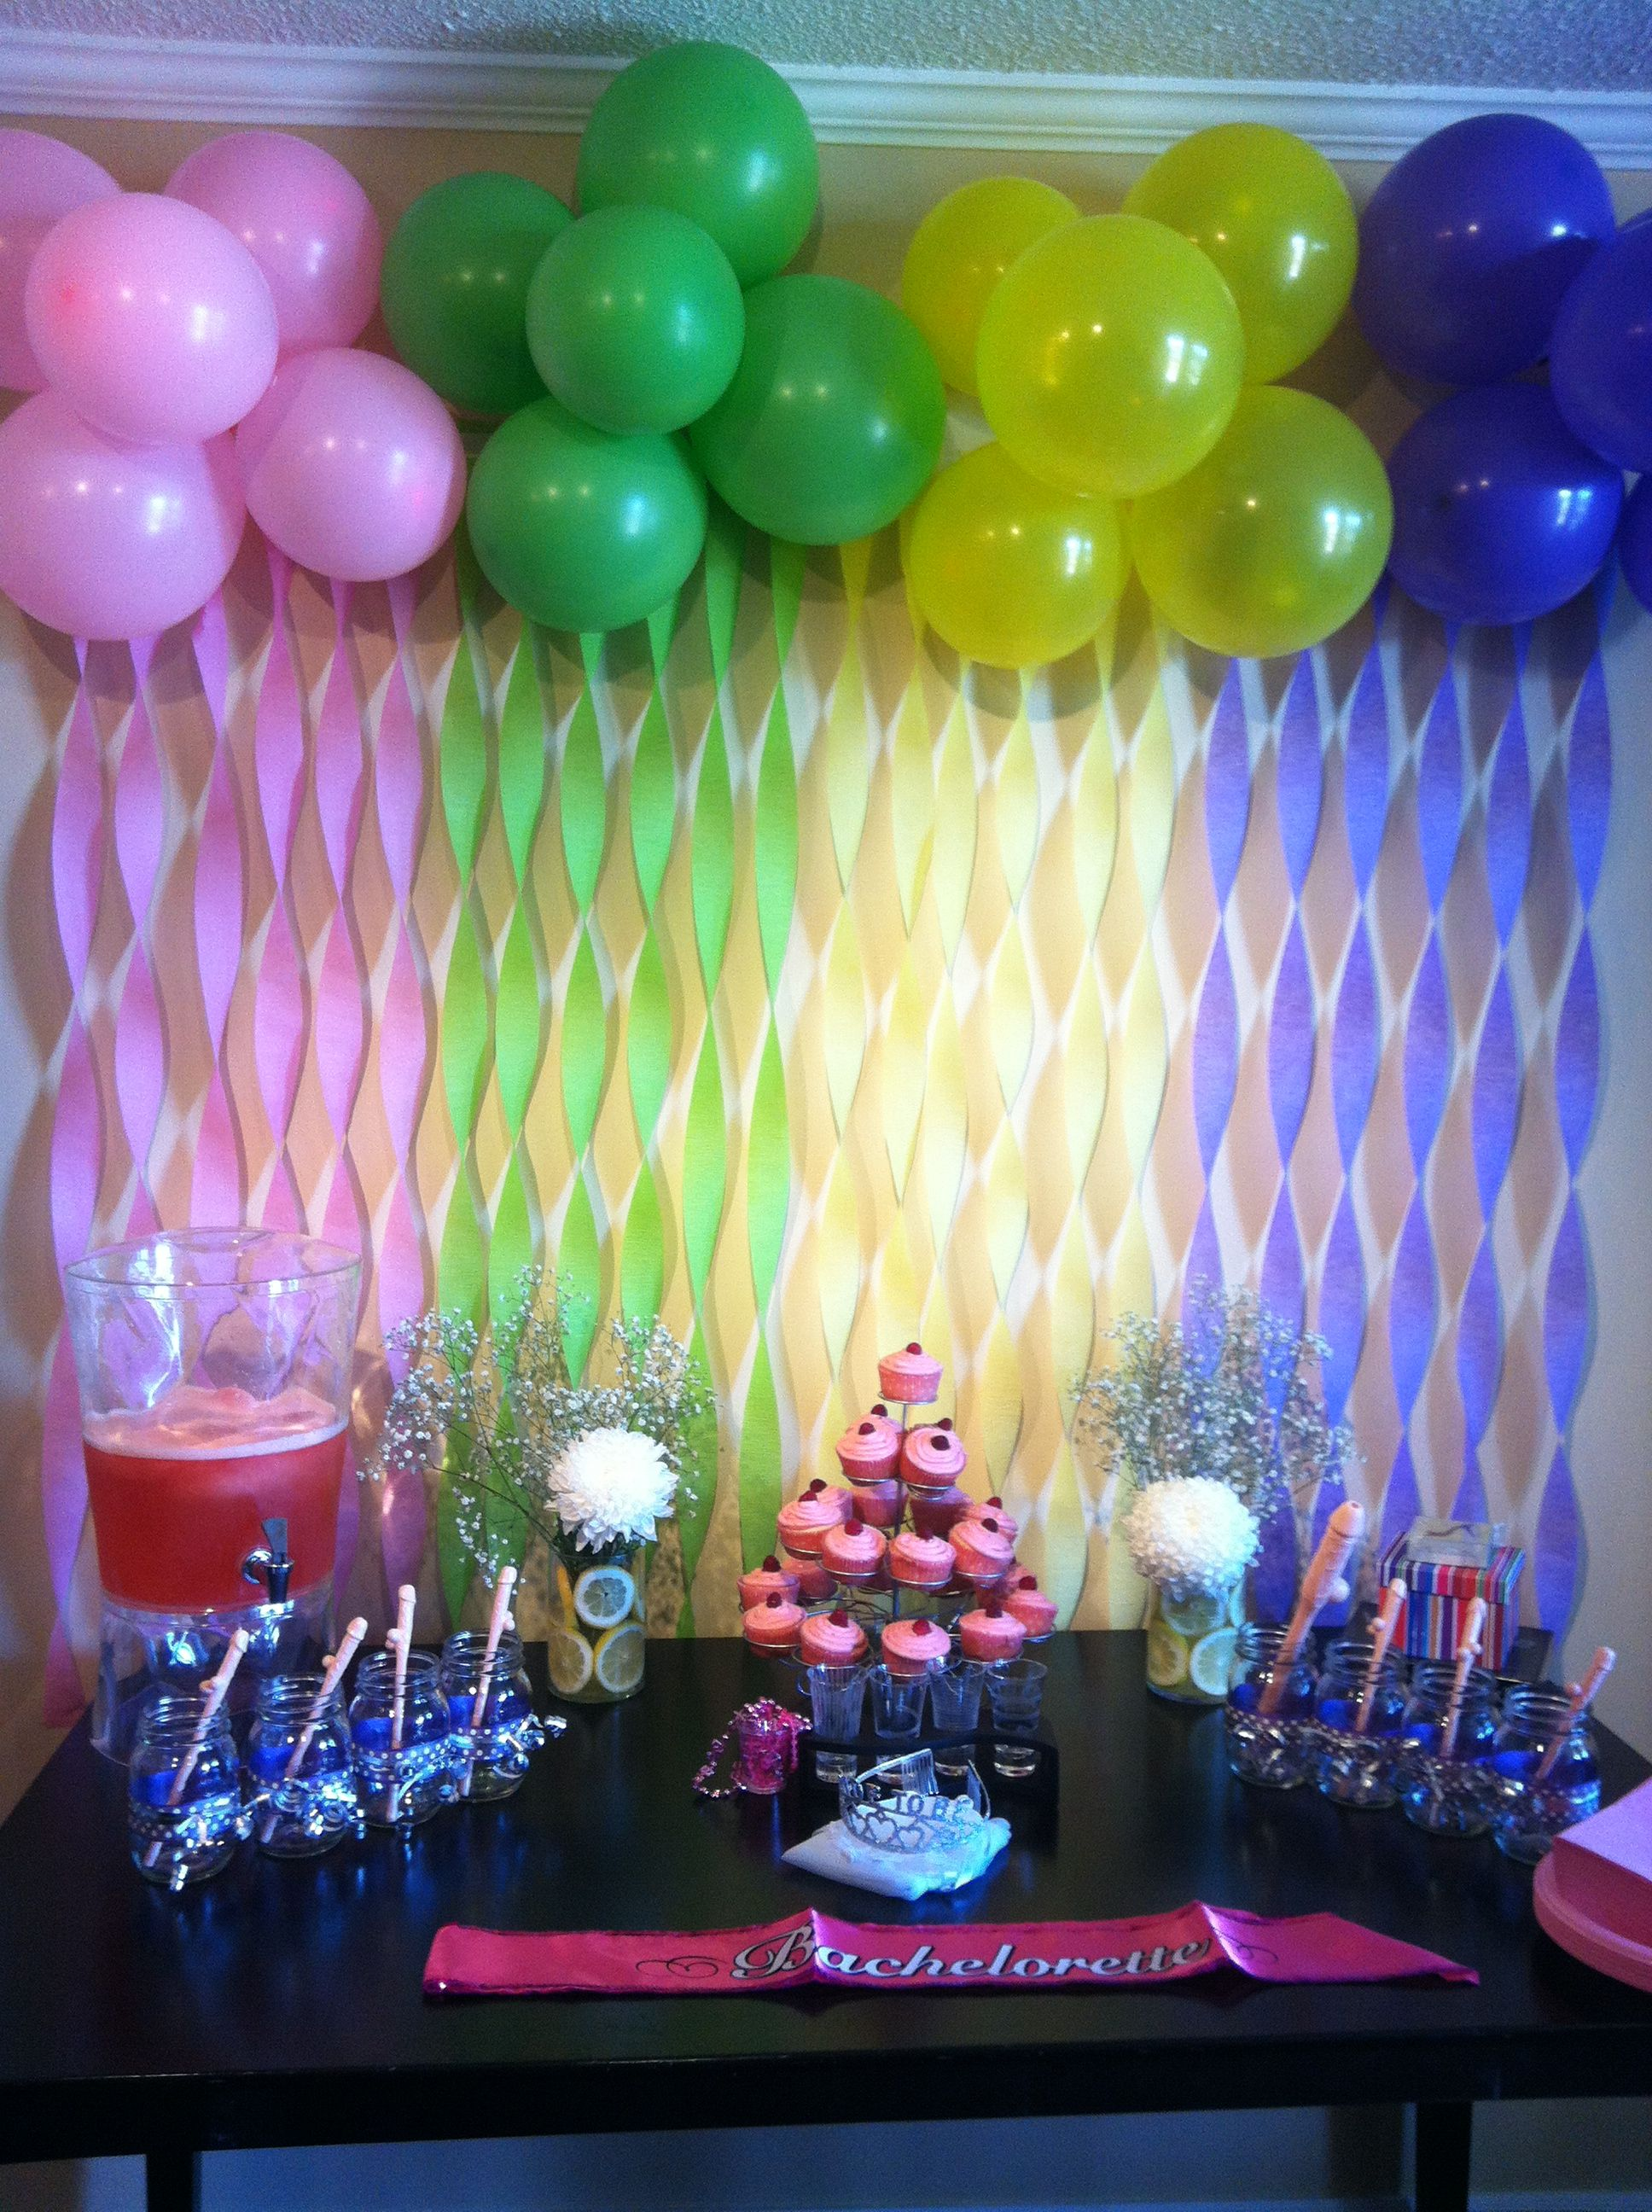 23 Balloon decorations   Grad   Pinterest   Coordinating colors     Don t need it for a bachelorette party  but I like the streamer  balloon  combo  A coordinating color for the middle balloon would make each bunch  look like